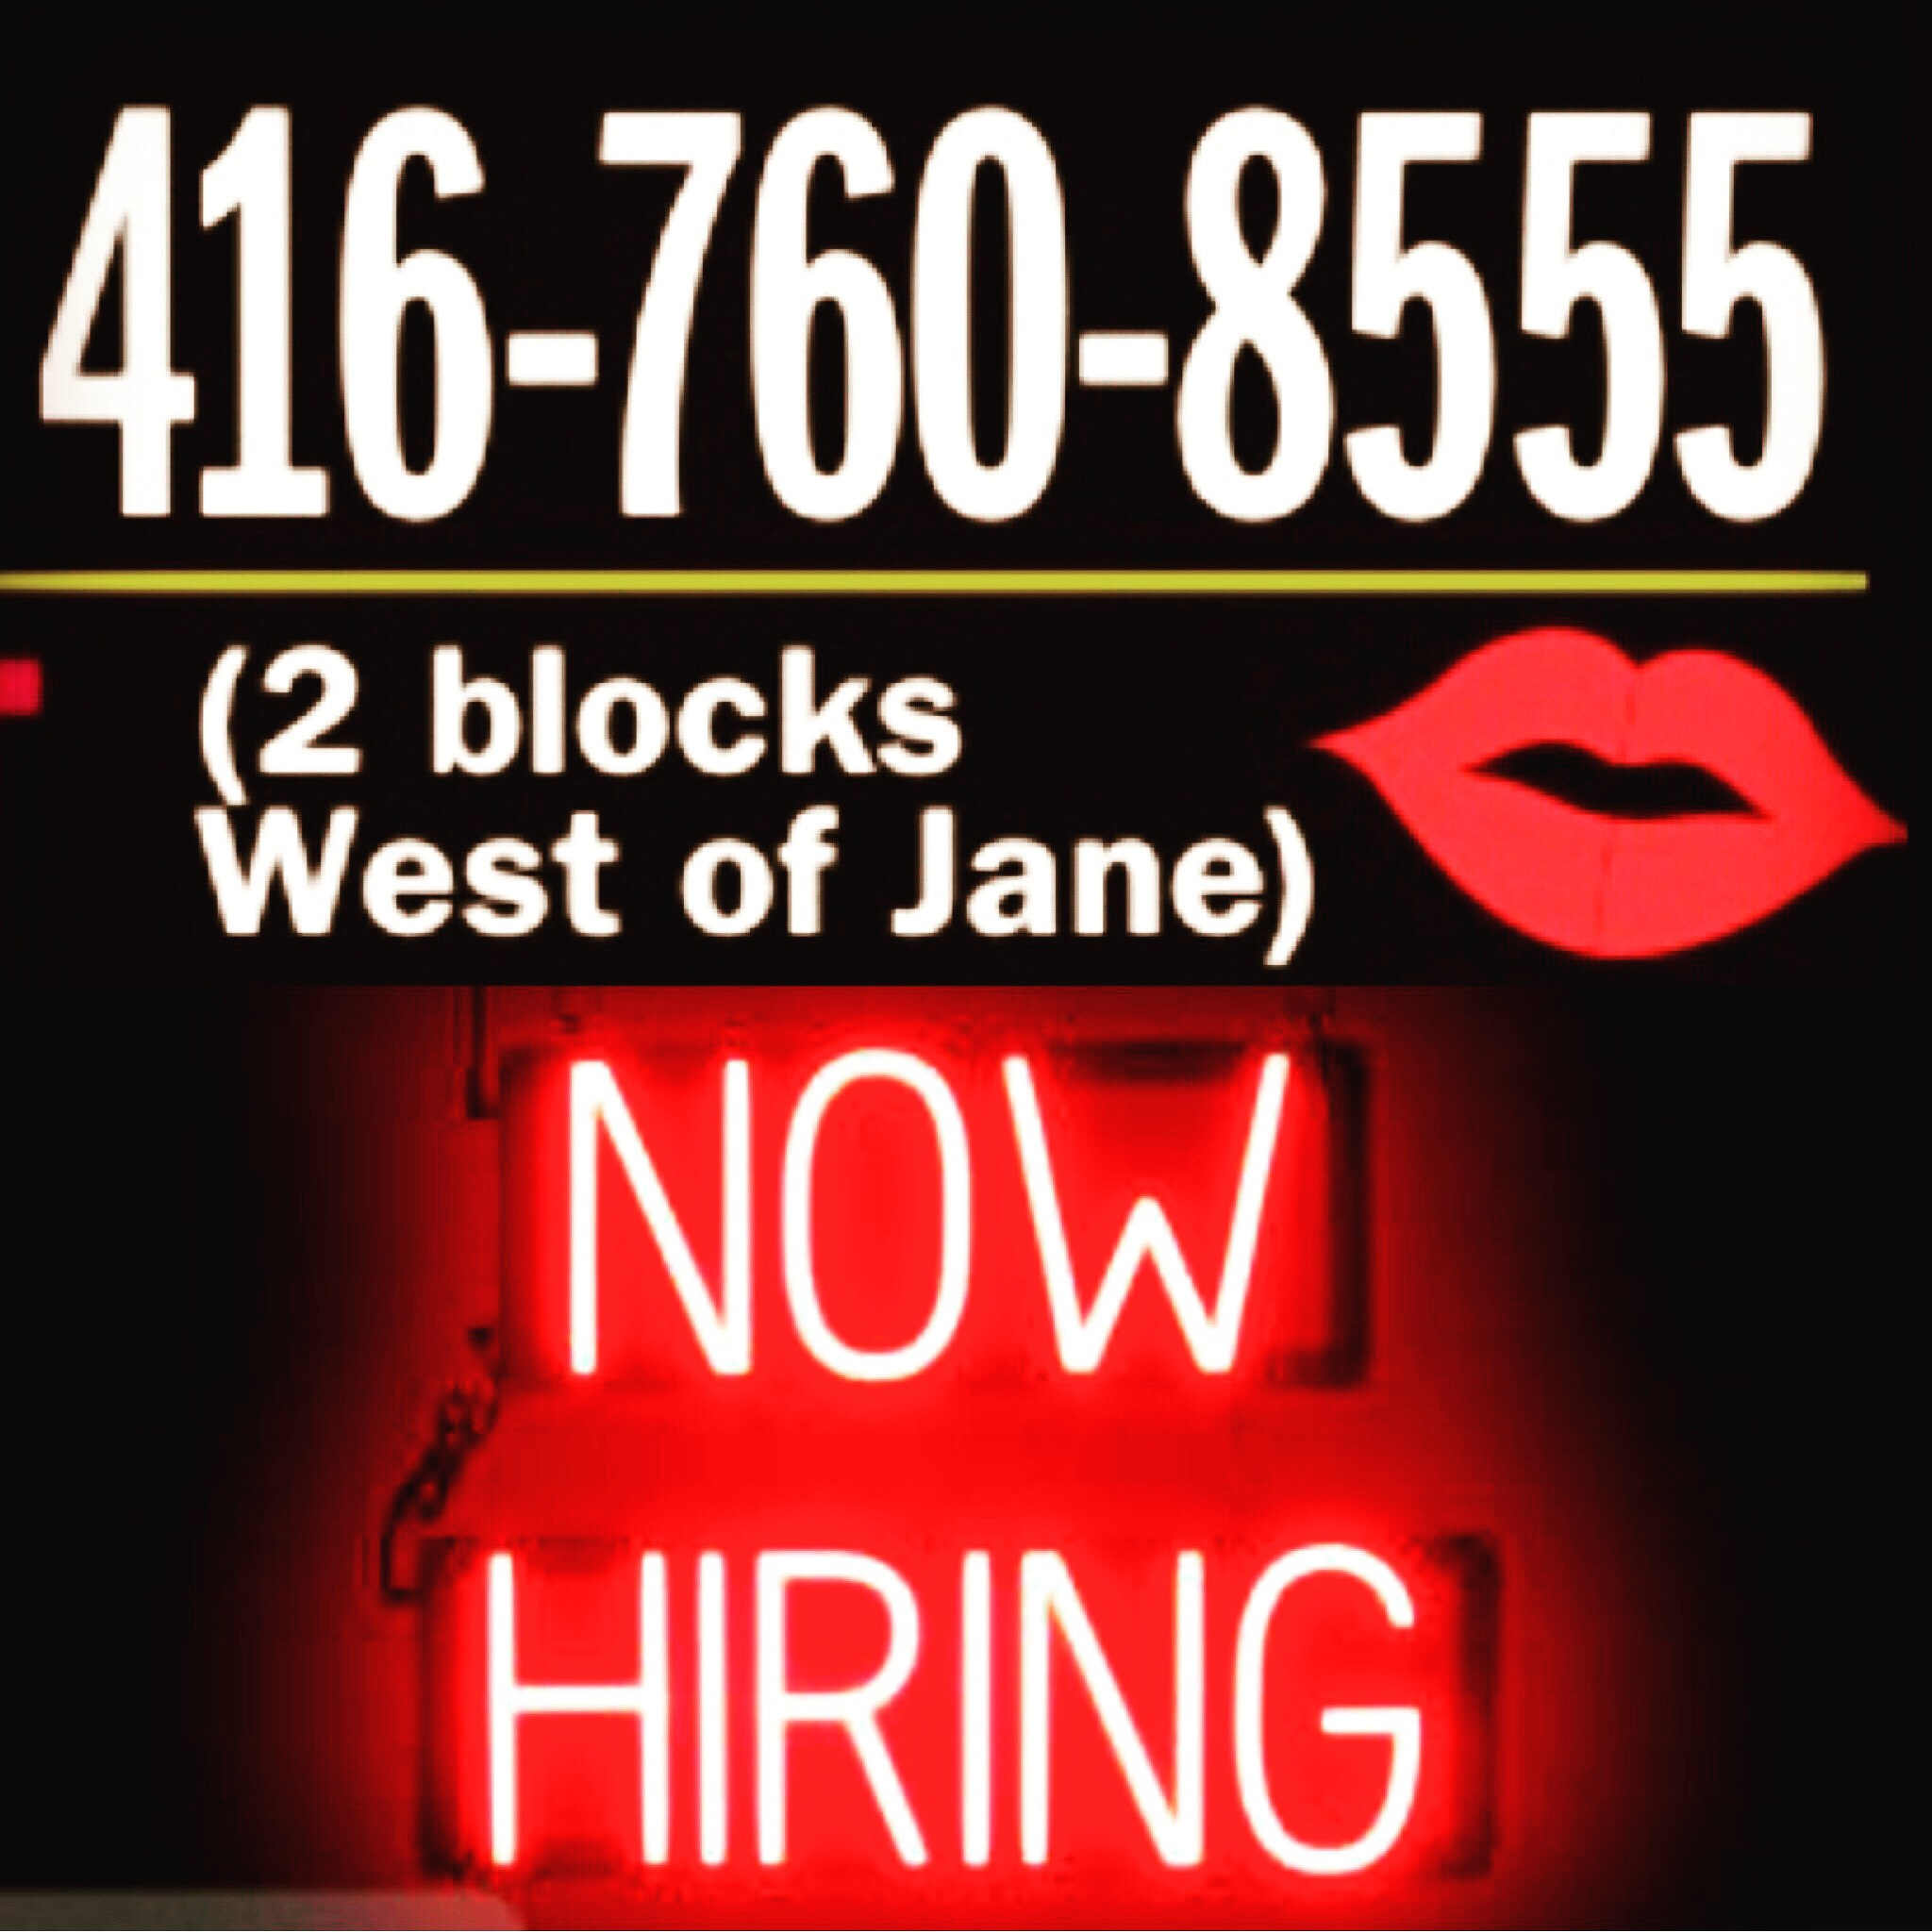 ATTENTION.! SEEKING INTERNATIONAL LADIES.! _TORONTO'S_MOST_CONVENIENT_BUSY_____LOCATION_ESTABLISHED_UPSCALE_$500-$1000 CASH-PER-EACH SHIFT__ __(DAY-9am-3pm or__ NOON-3pm-9pm) or__ DOUBLE $$$ 9am-9pm) ___ 647 836 4229